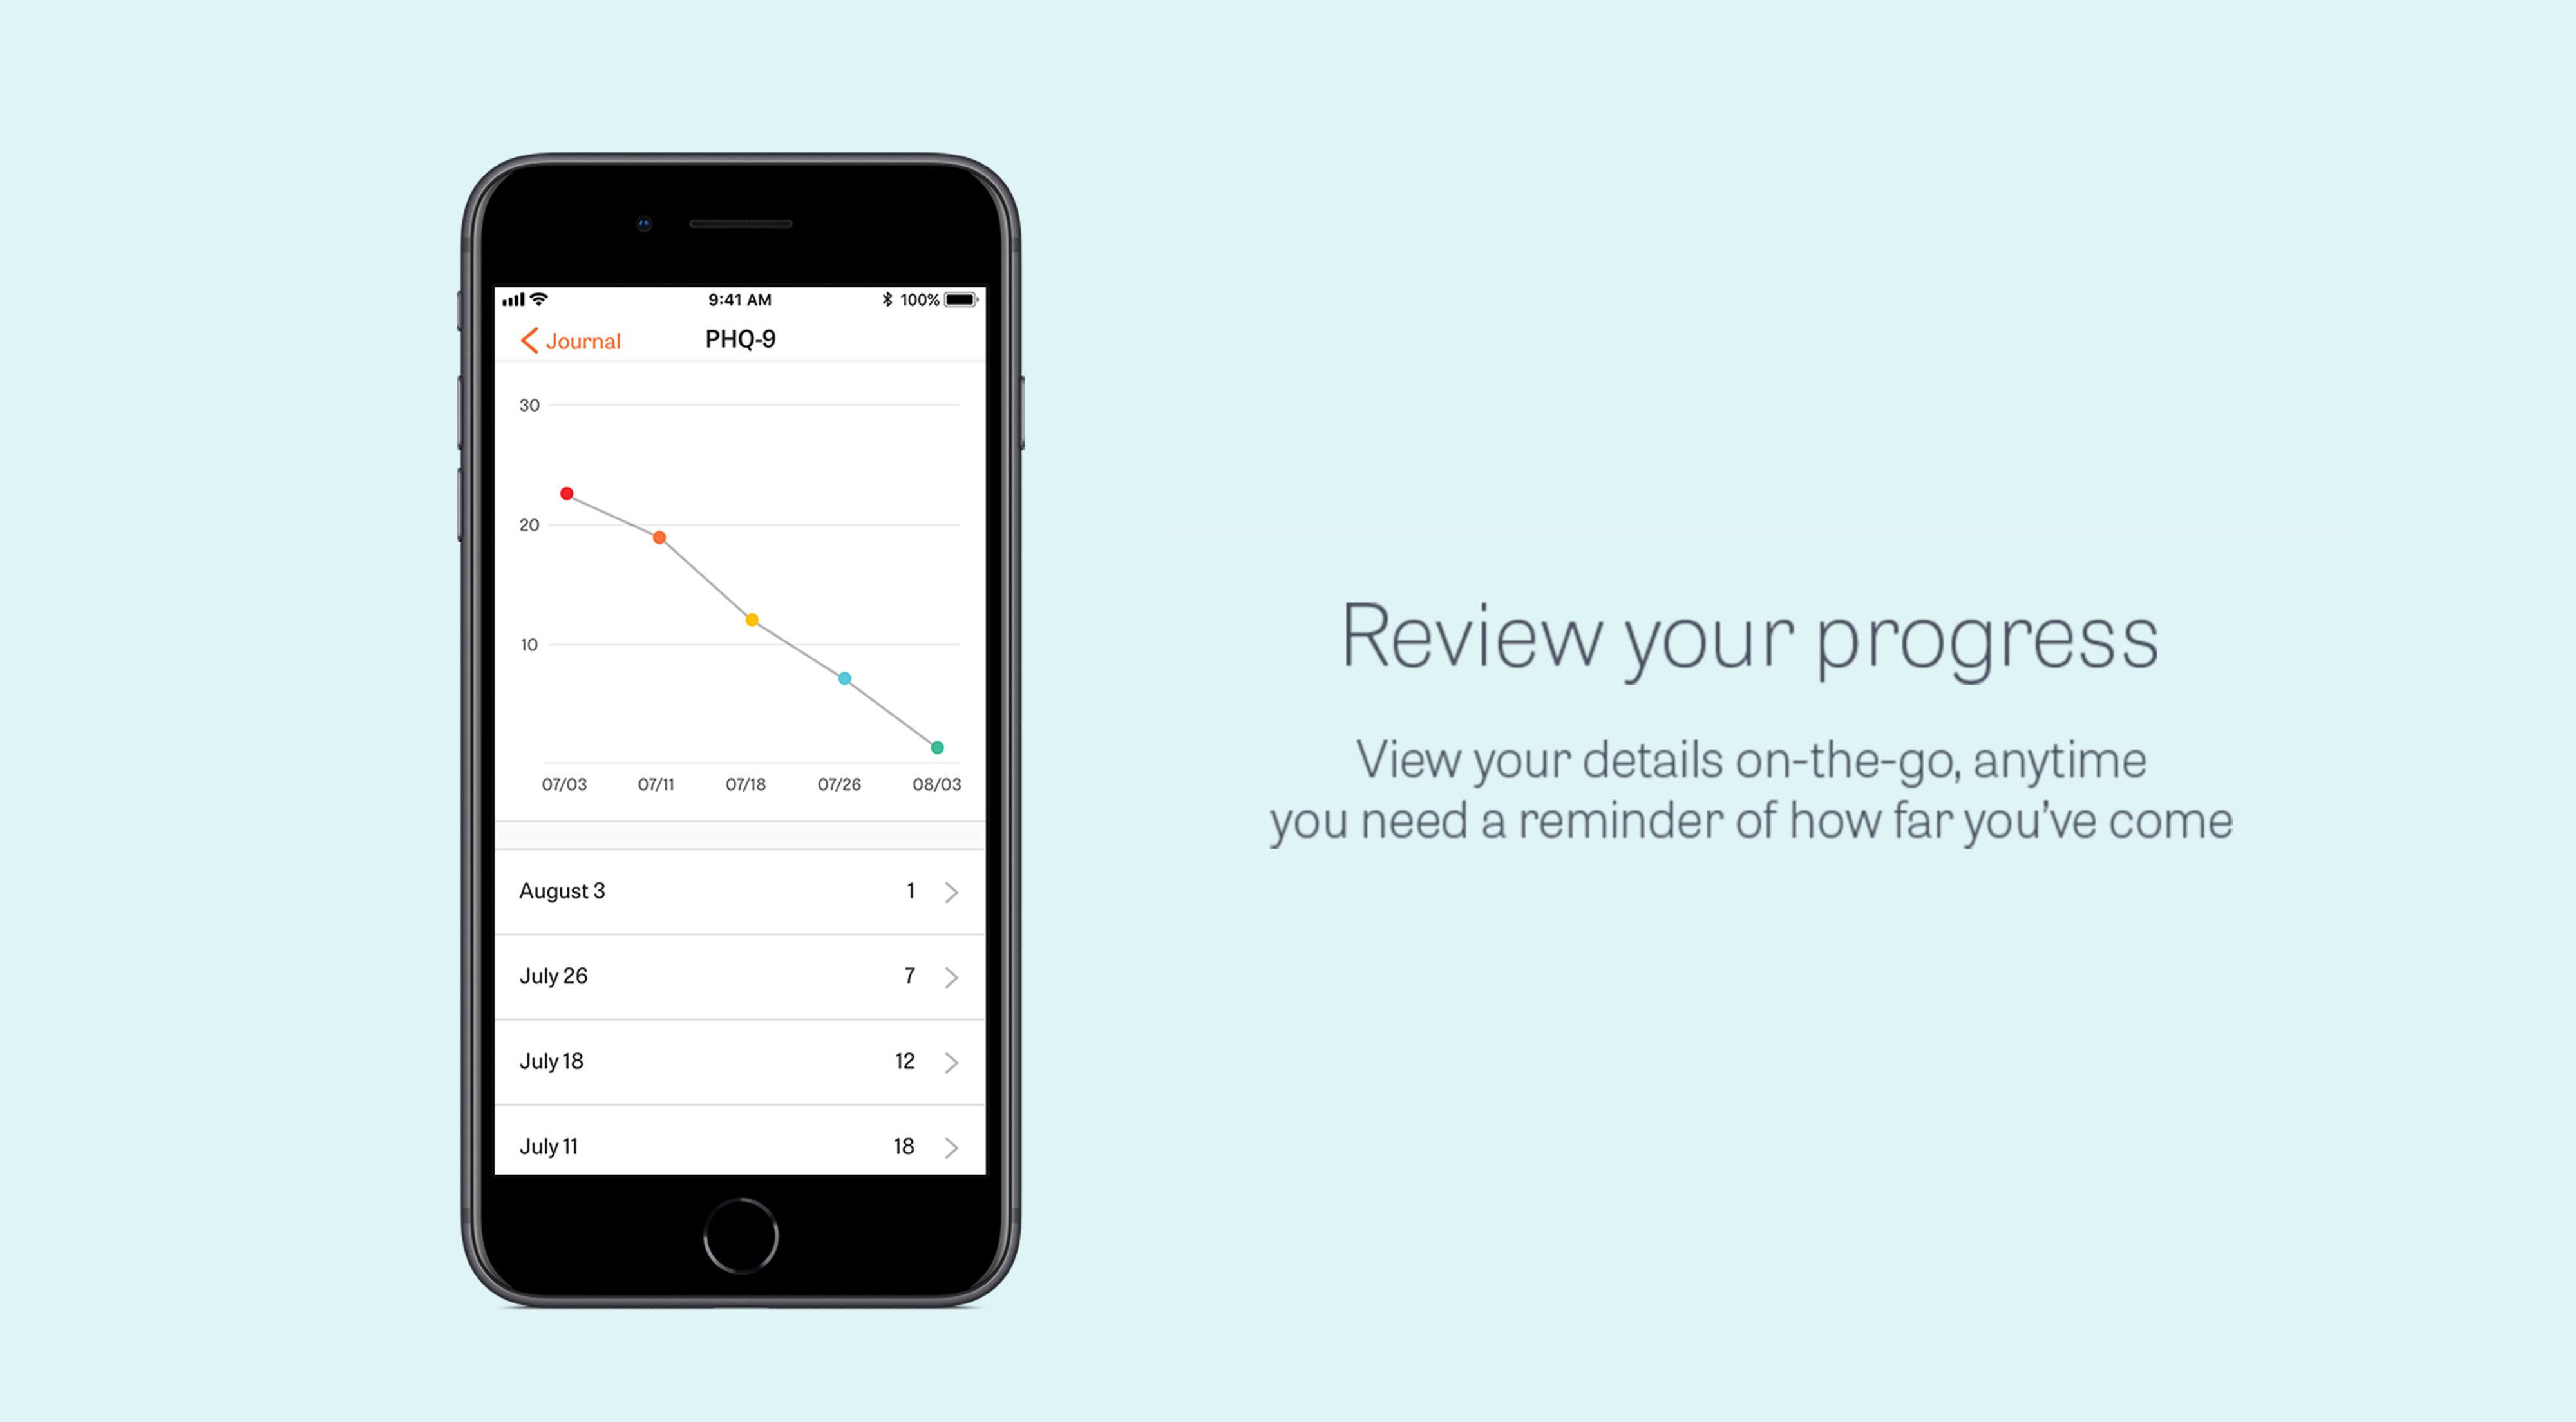 Review your progress